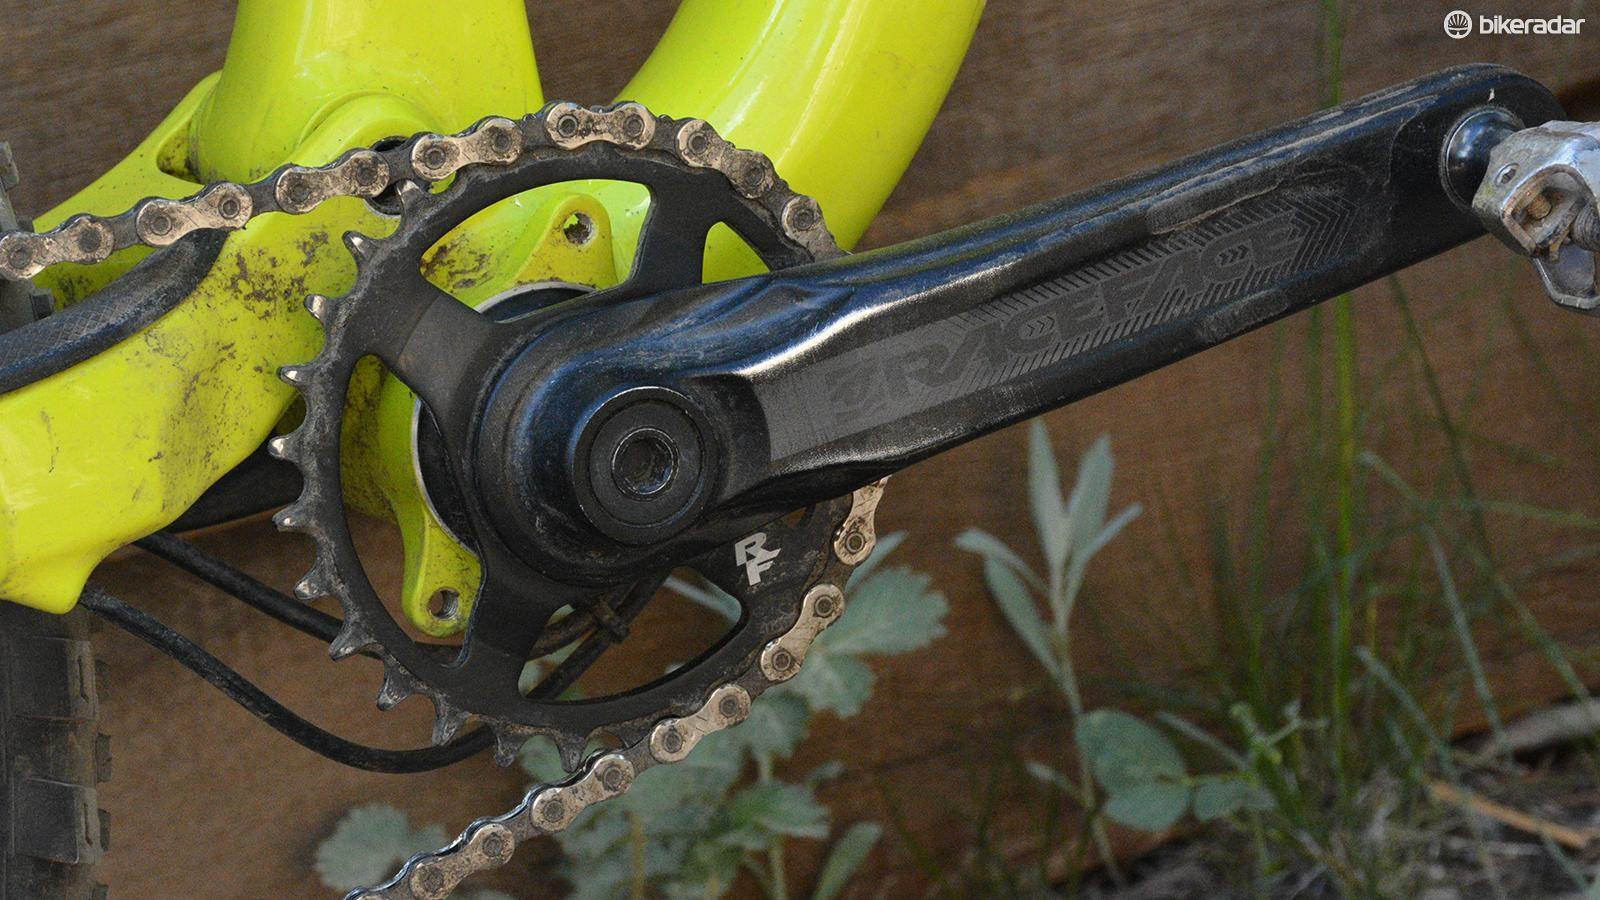 The Race Face Aeffect crank spins a little 28-tooth chainring